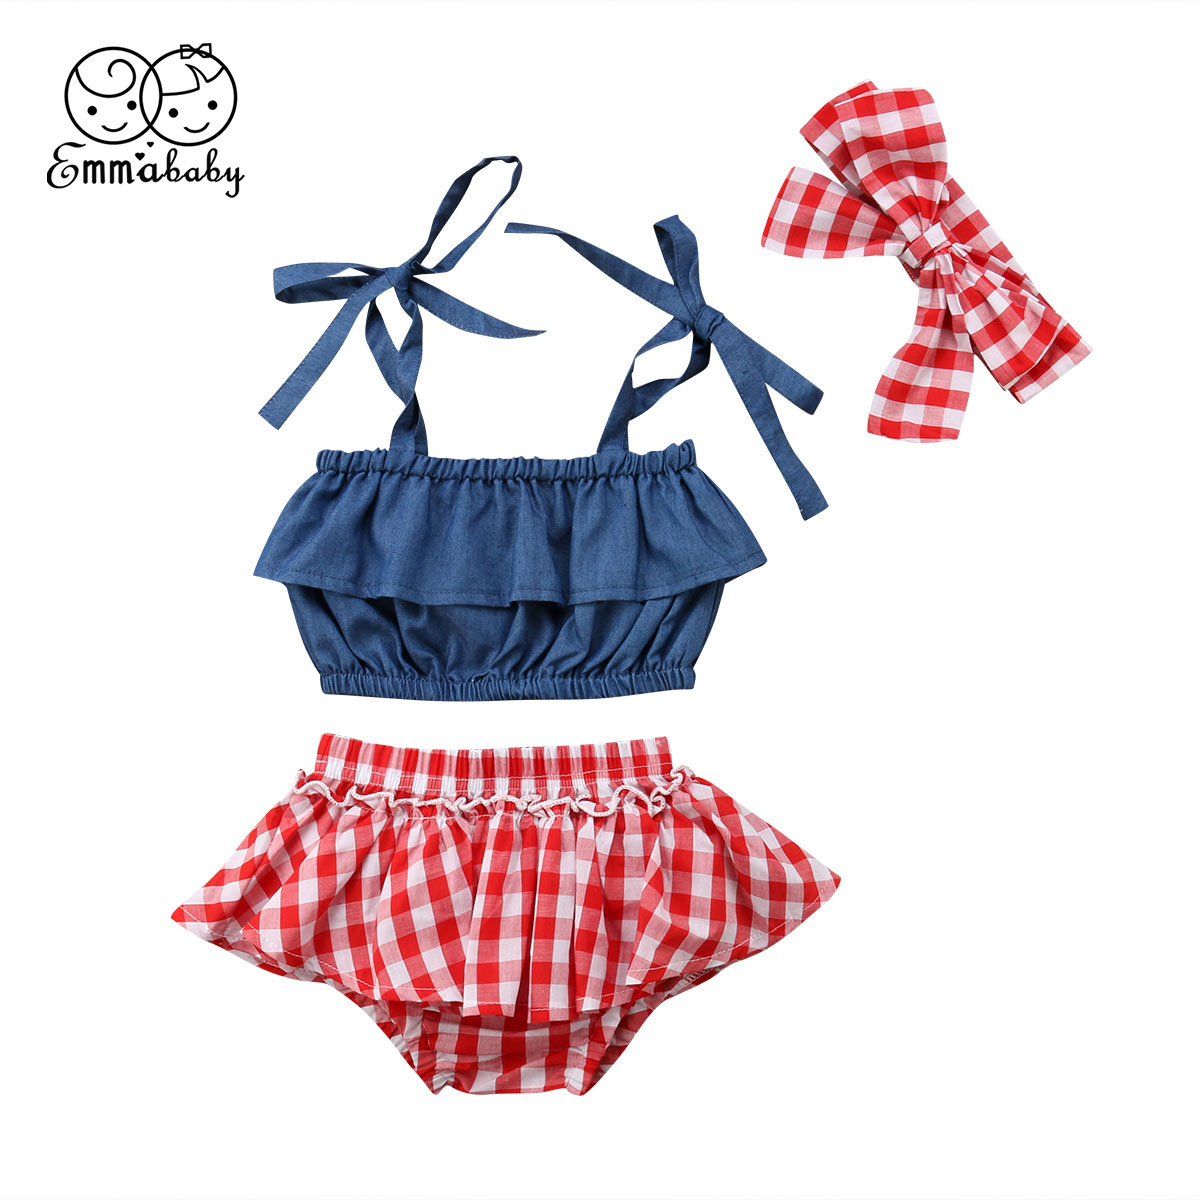 Fashion Baby Girl Outfit 3PCS Off-Shoulder Strappy Denim Top Red Plaid Shorts Girl Headband Summer Clothe Set For Kids